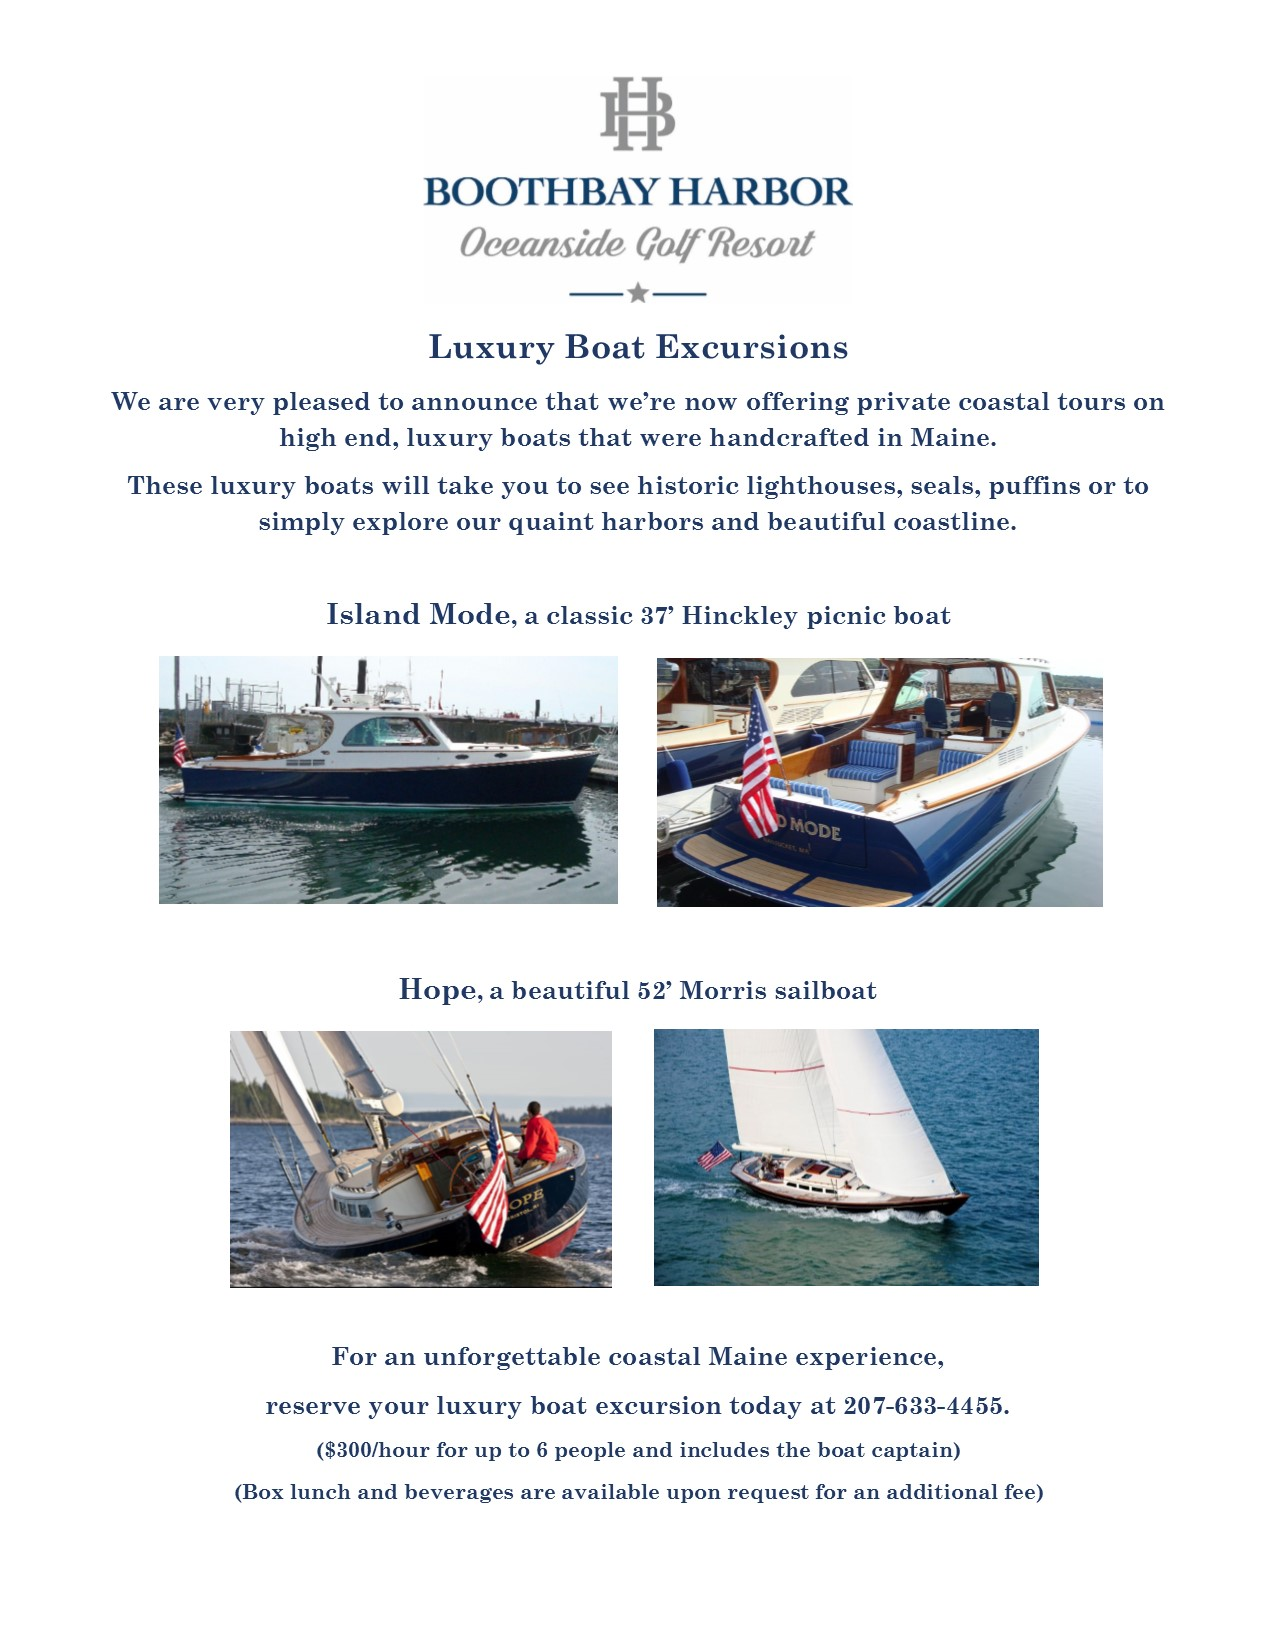 New Luxury Boat Excursions